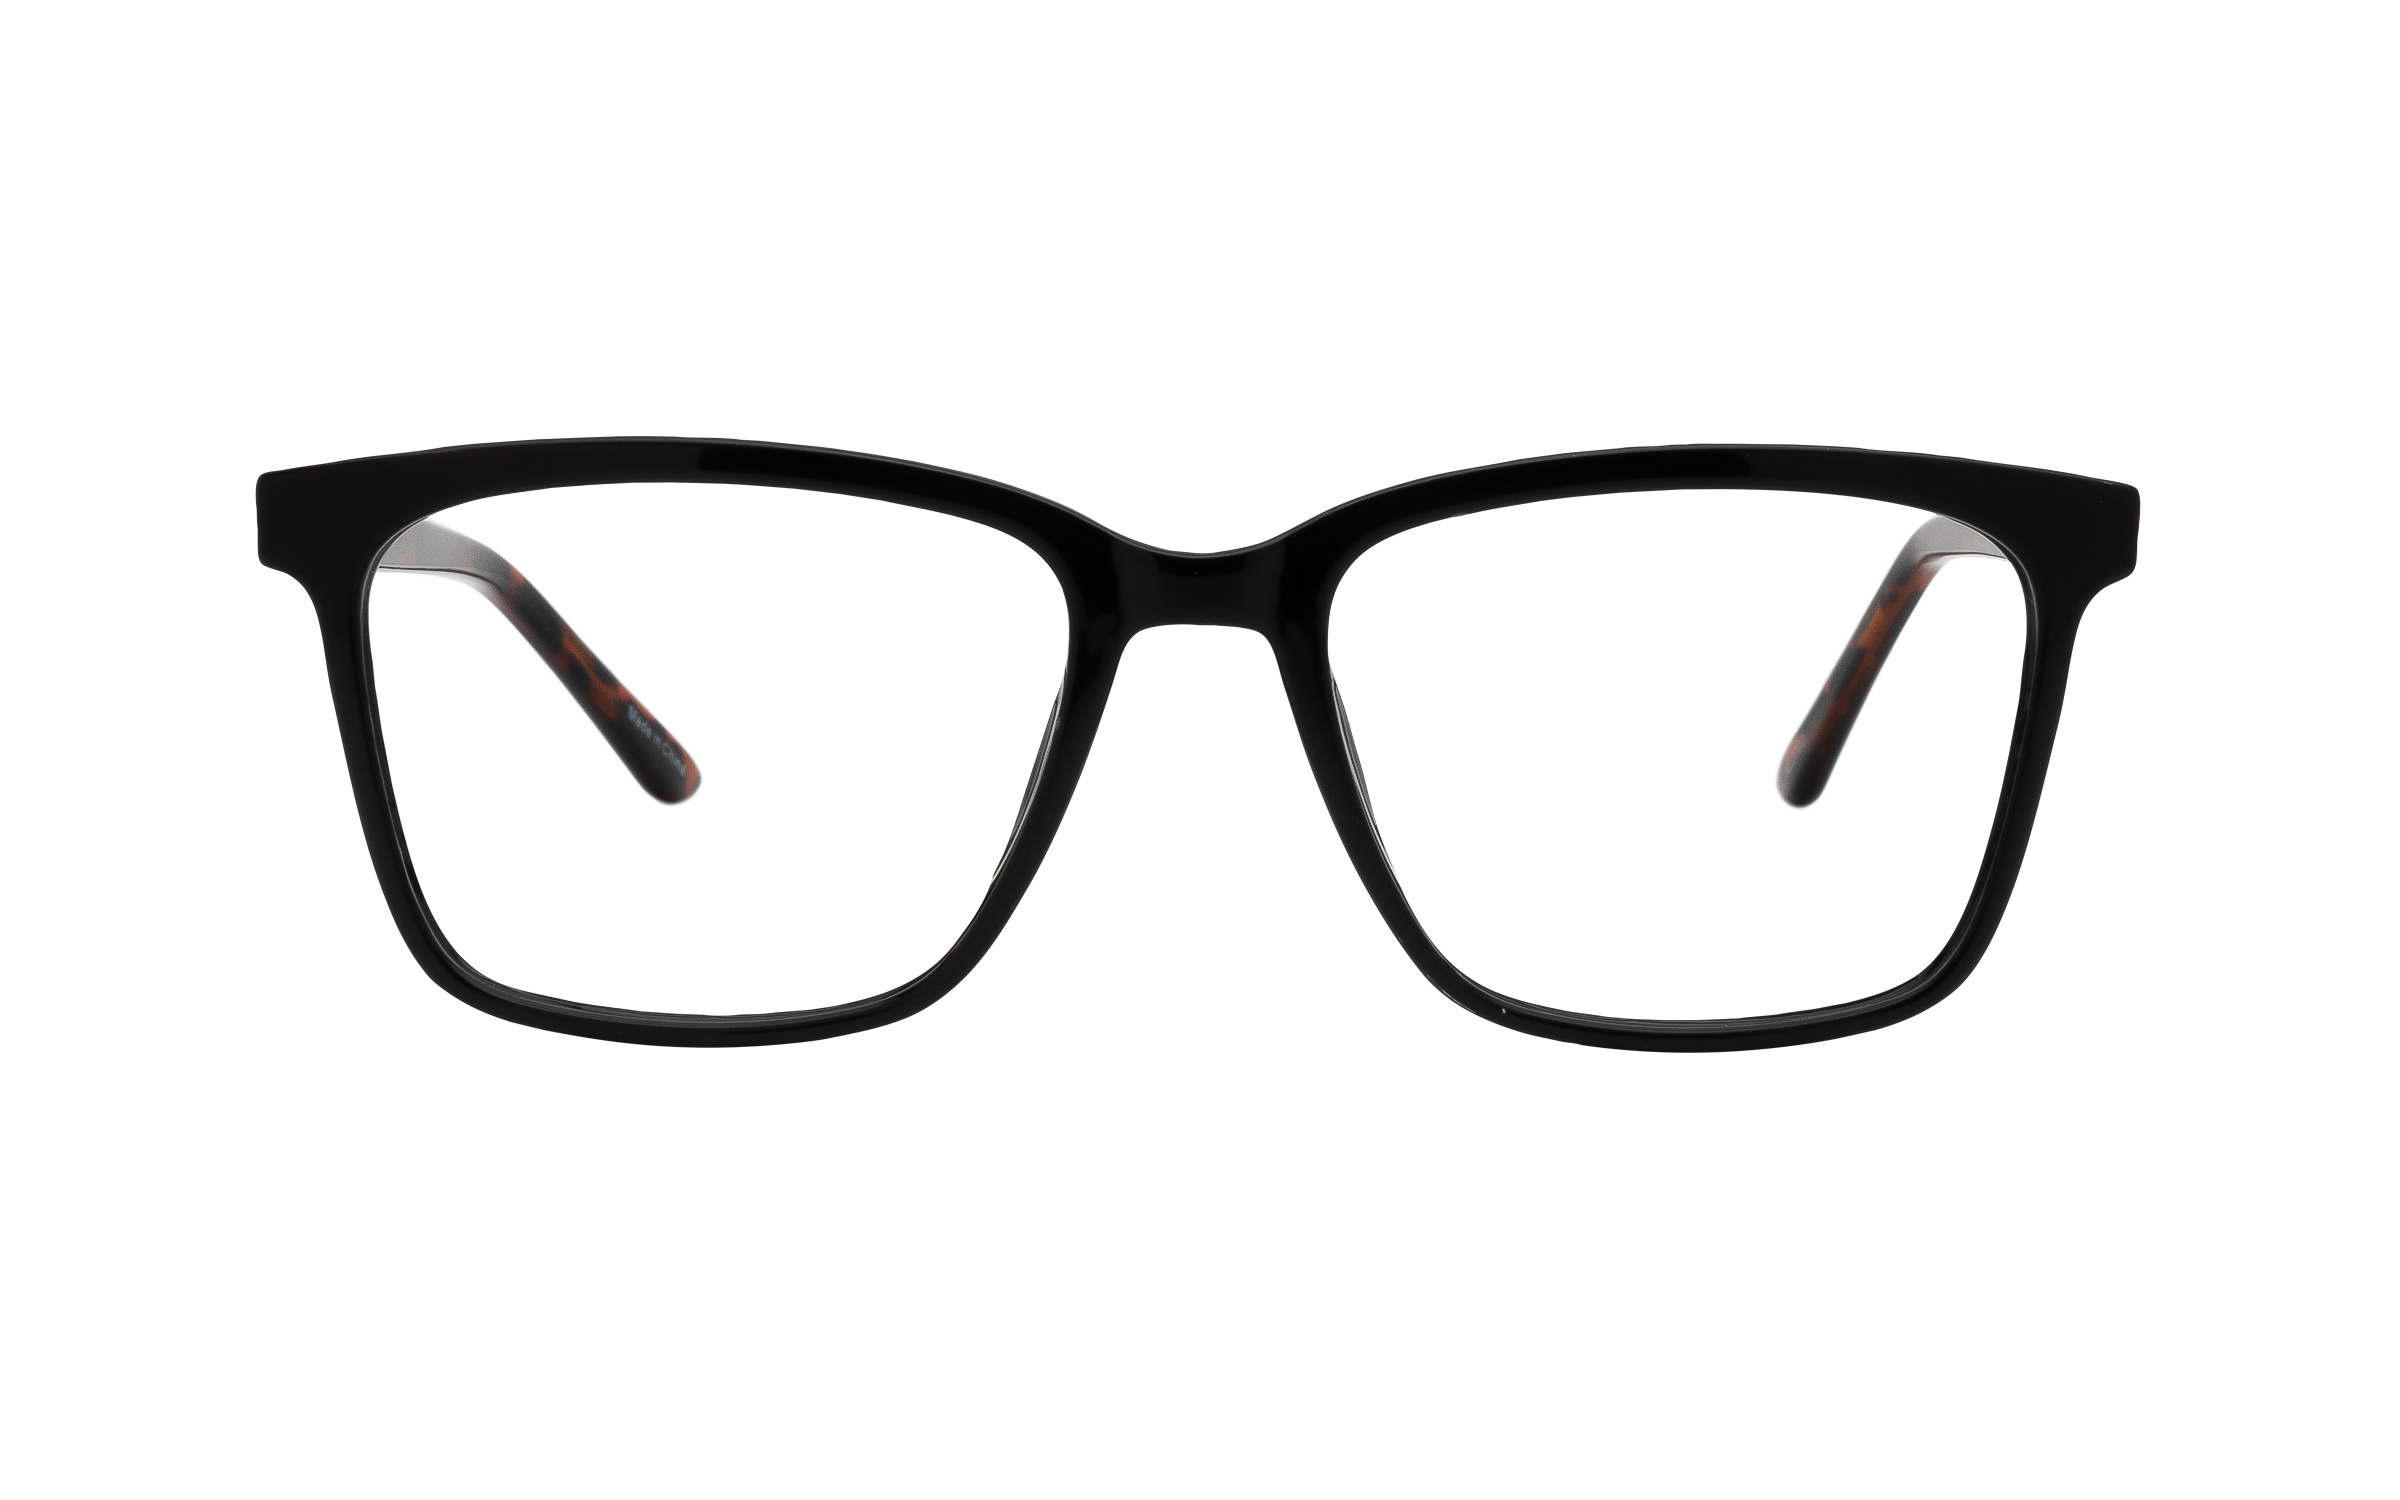 Clearly Basics Burin COL138 C03 (51) Eyeglasses and Frame in Black